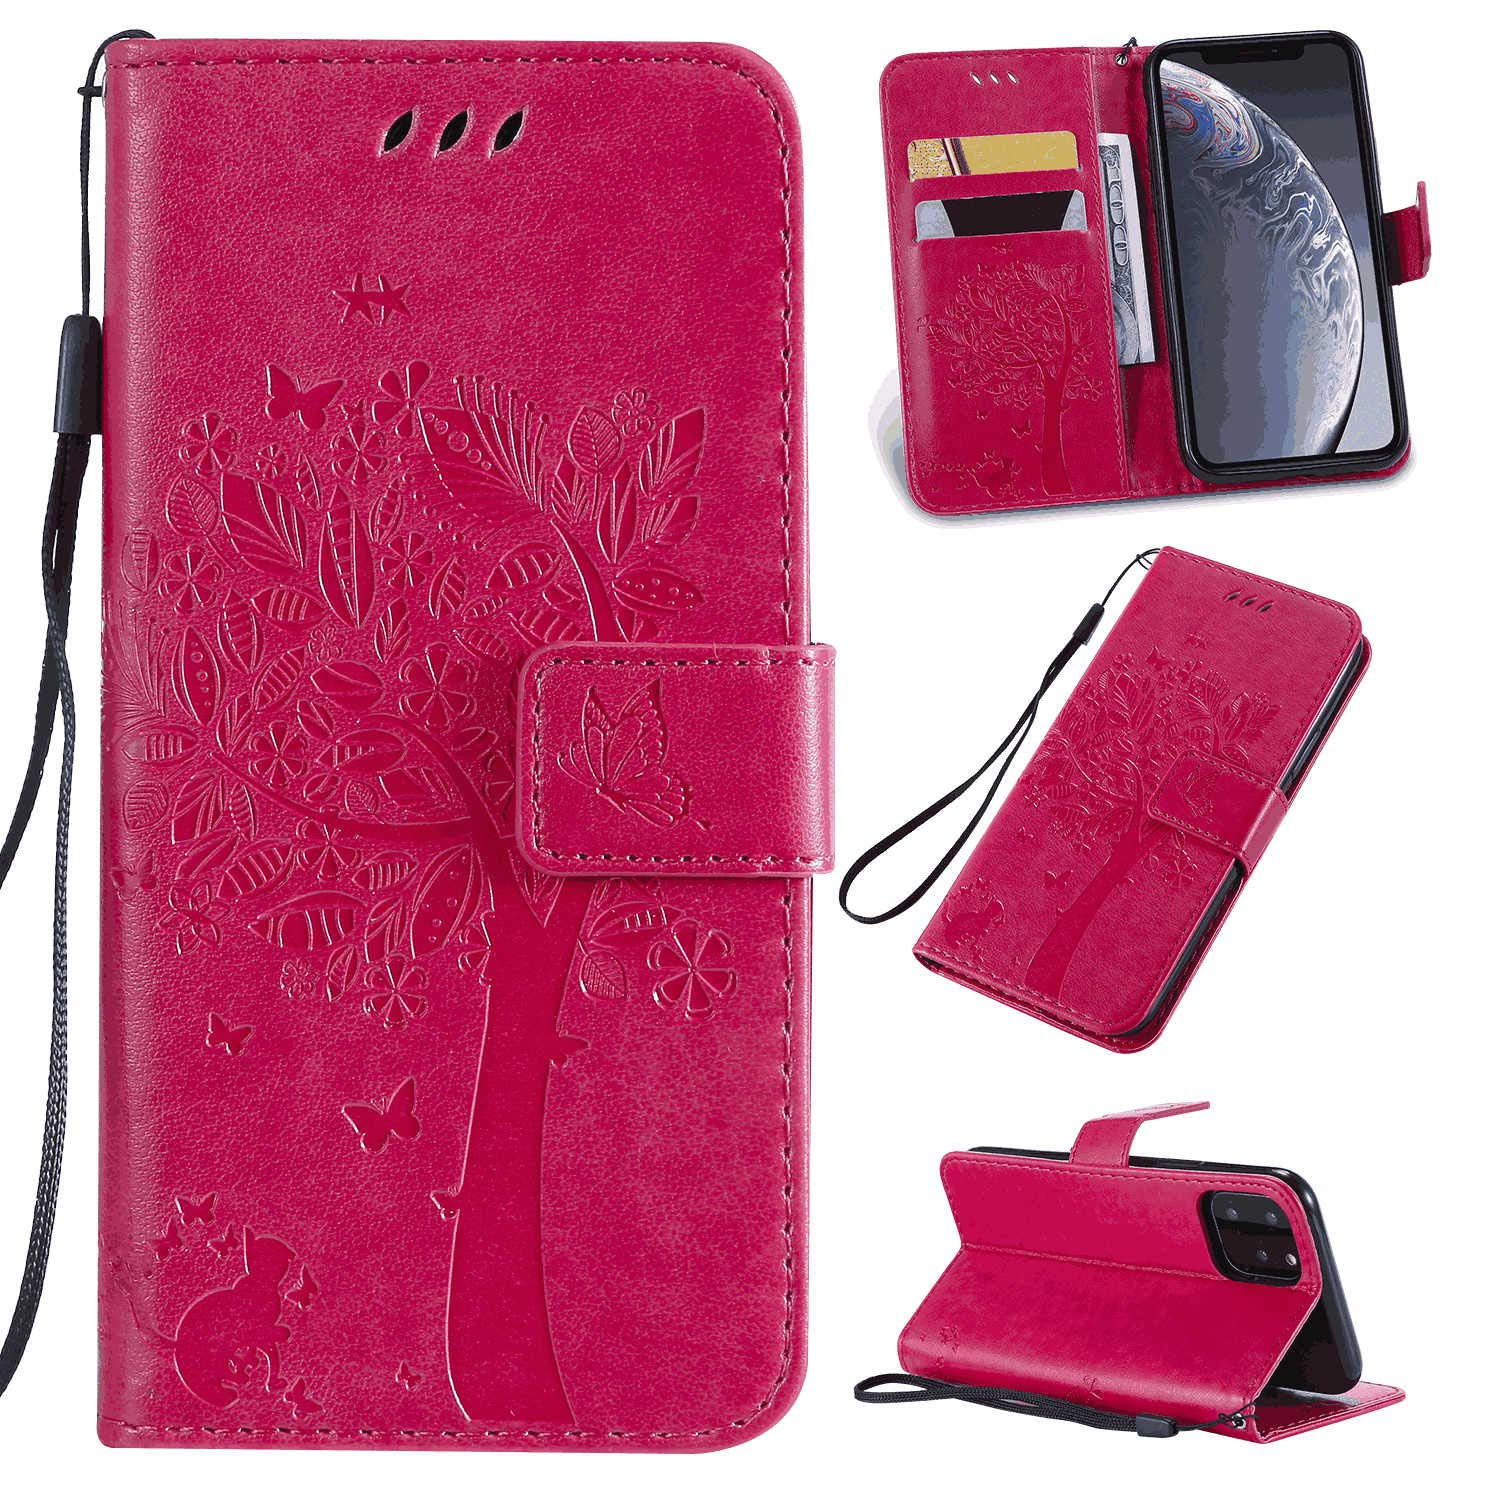 Leather Cover Compatible with iPhone 11 Gray Wallet Case for iPhone 11